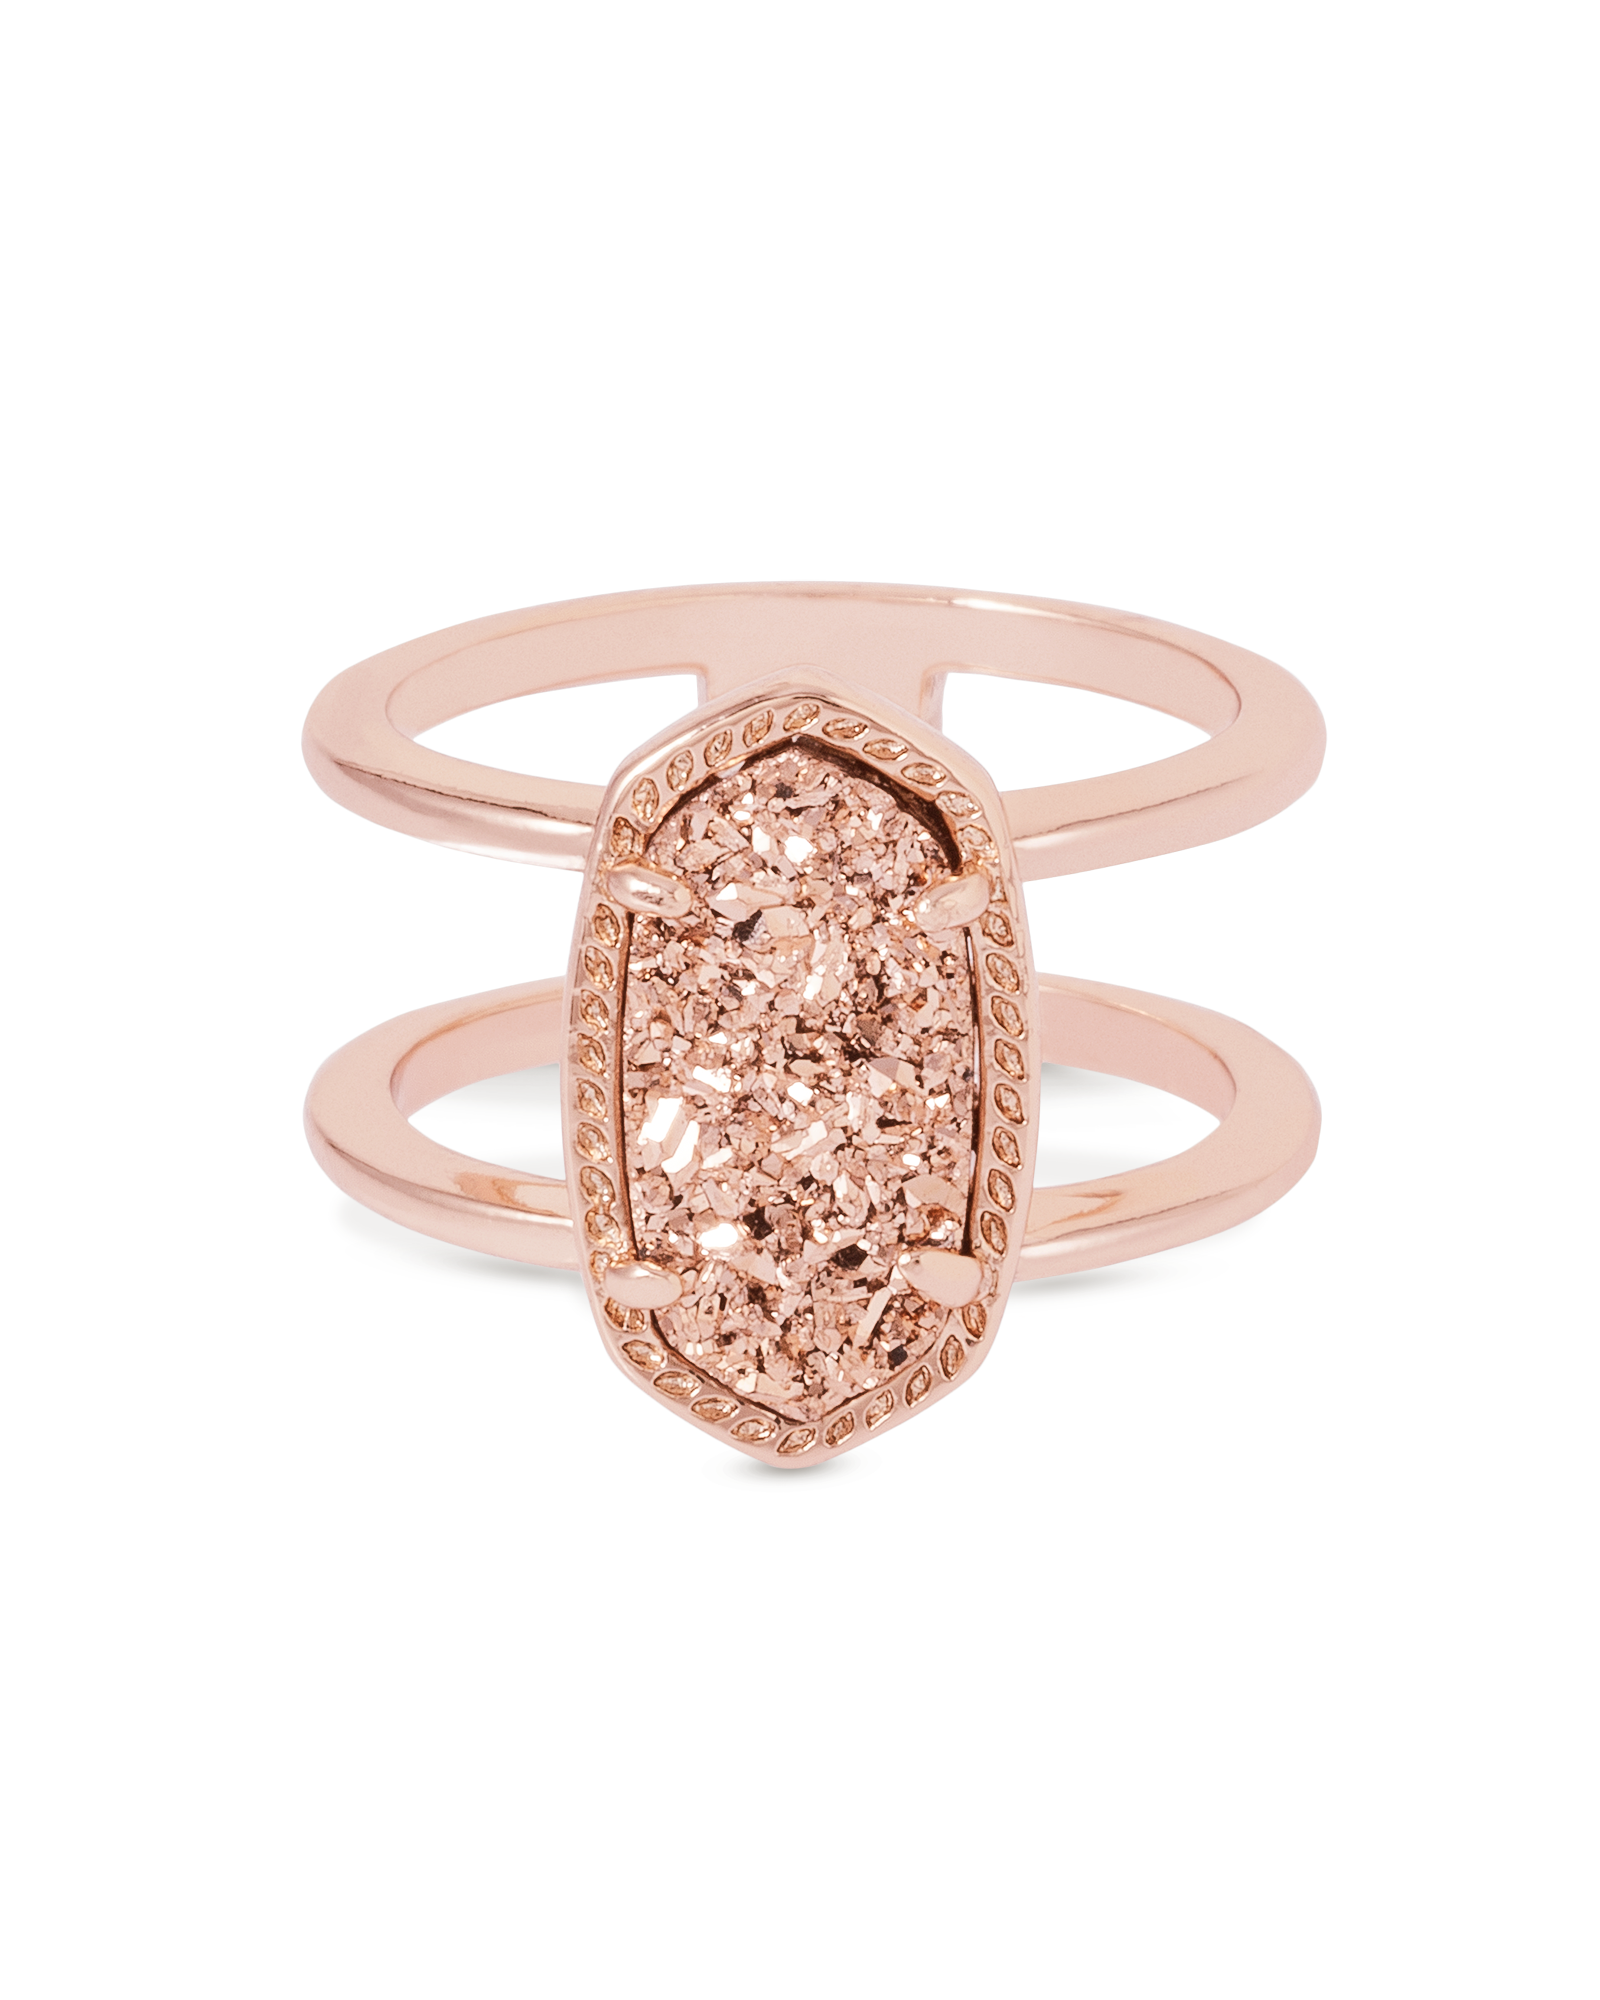 Elyse Double Band Ring in Rose Gold Kendra Scott Jewelry